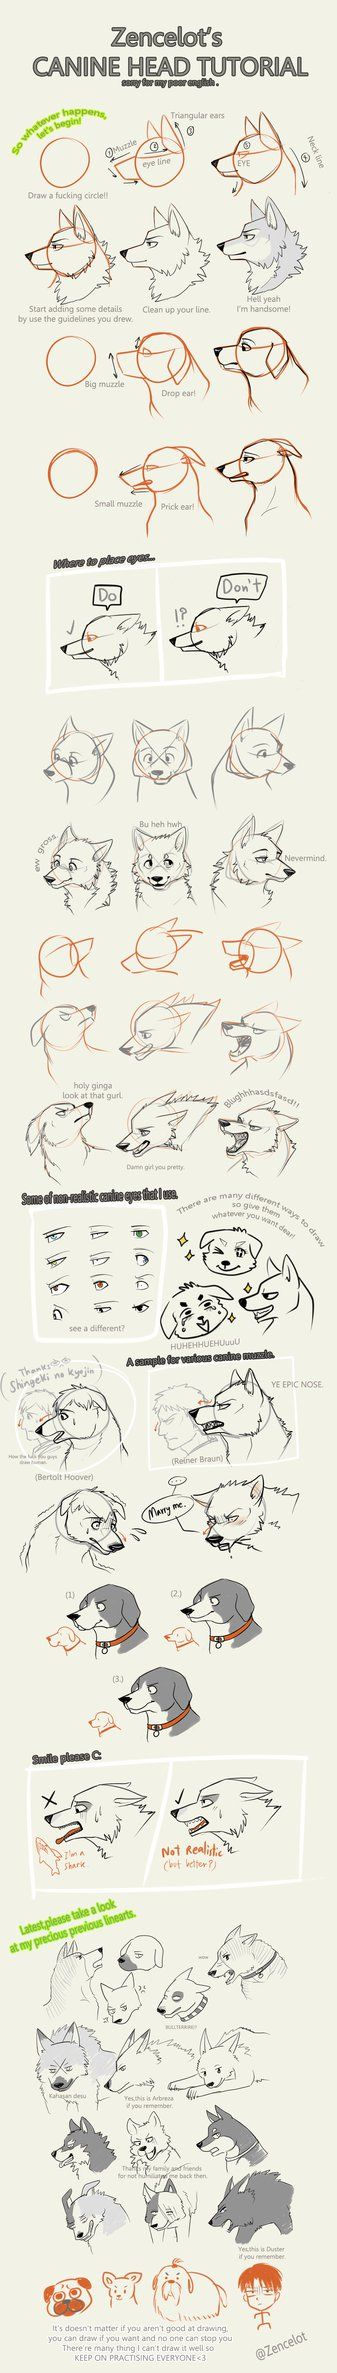 zency_s_canine_head_tutorial_by_zencelot-d6rjtt5.png (337×2373)